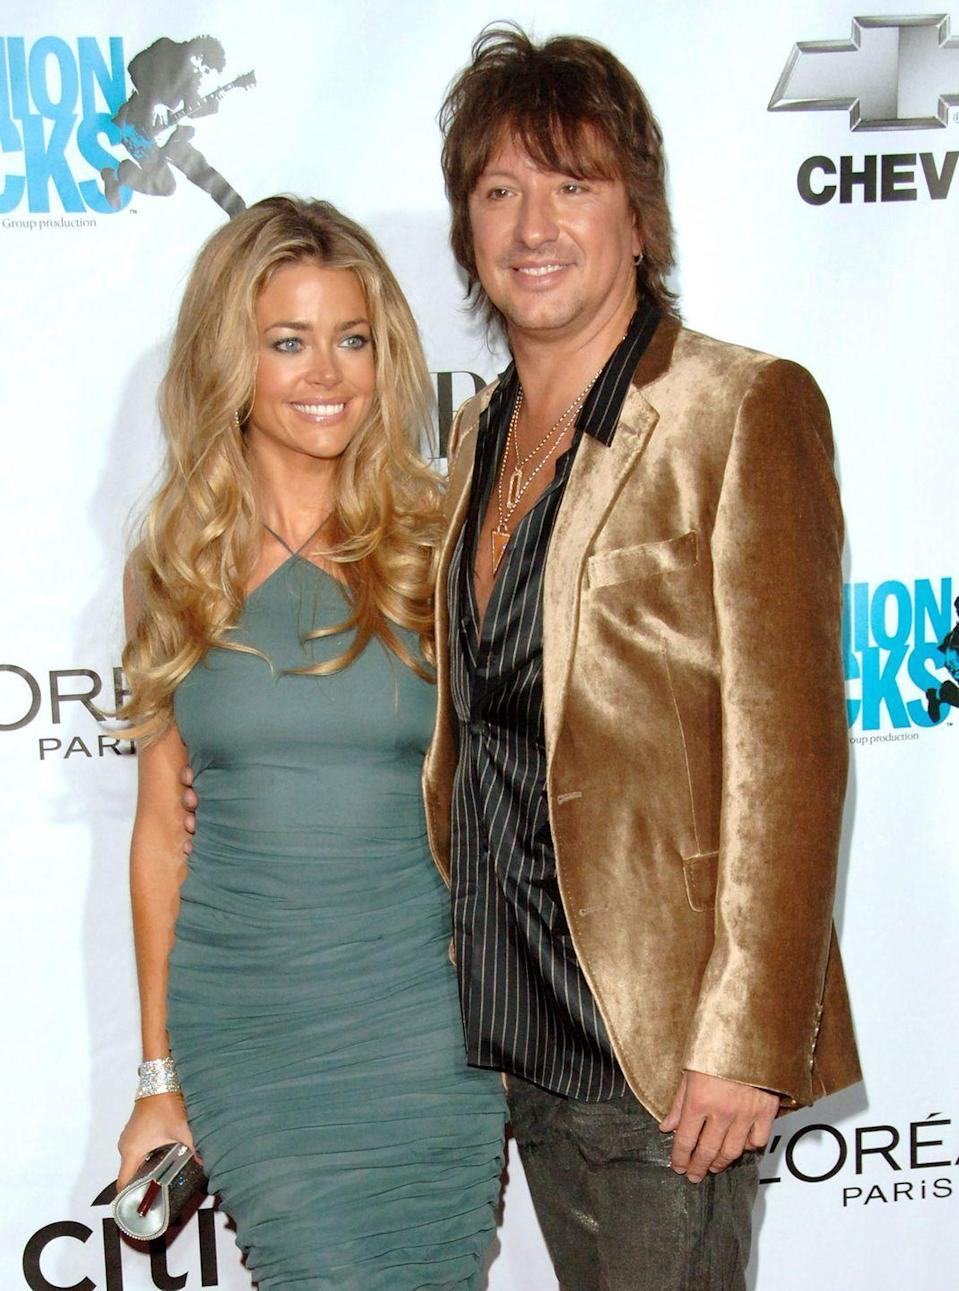 "<p>Fans were left perplexed by Denise Richards and Richie Sambora's relationship, because (wait for it) they met through their former spouses. The couple <a href=""https://www.smh.com.au/entertainment/celebrity/i-didnt-break-sambora-marriage-denise-richards-20110728-1i0yw.html"" rel=""nofollow noopener"" target=""_blank"" data-ylk=""slk:began dating in 2006"" class=""link rapid-noclick-resp"">began dating in 2006</a> after Richie divorced Heather Locklear and Denise split from Charlie Sheen.</p>"